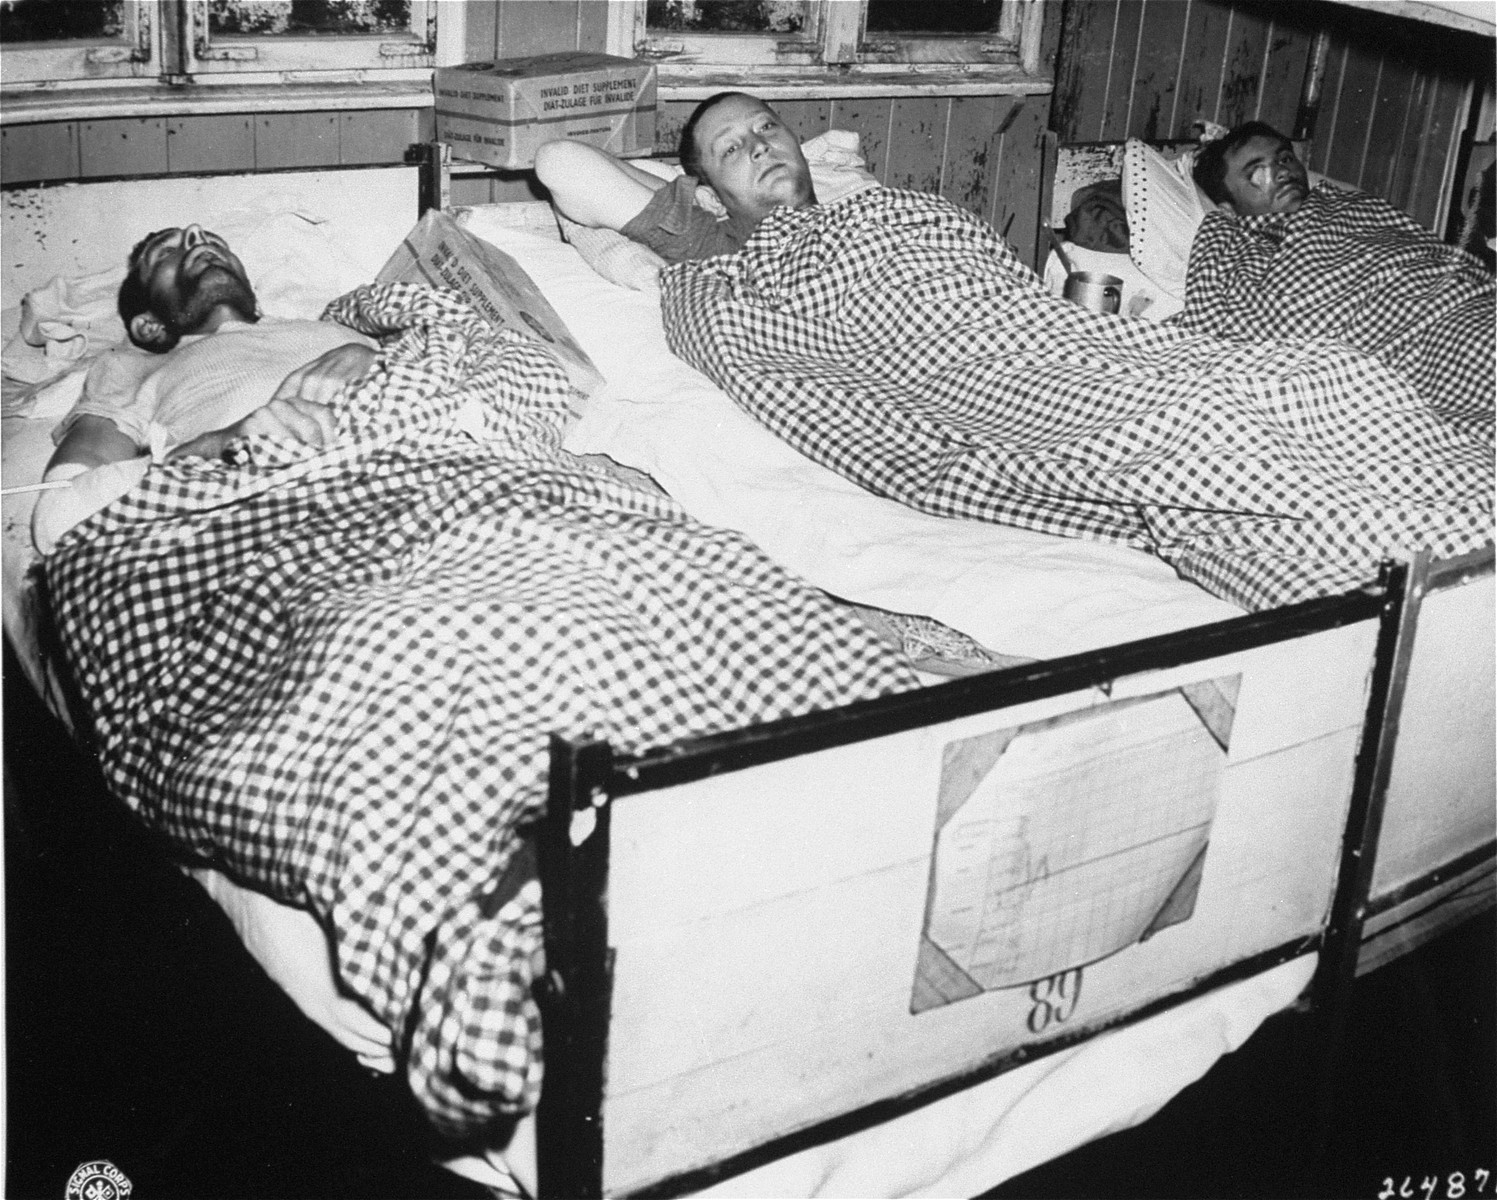 Three survivors infected with typhus lie in beds in the hospital barracks in the Flossenbuerg concentration camp.